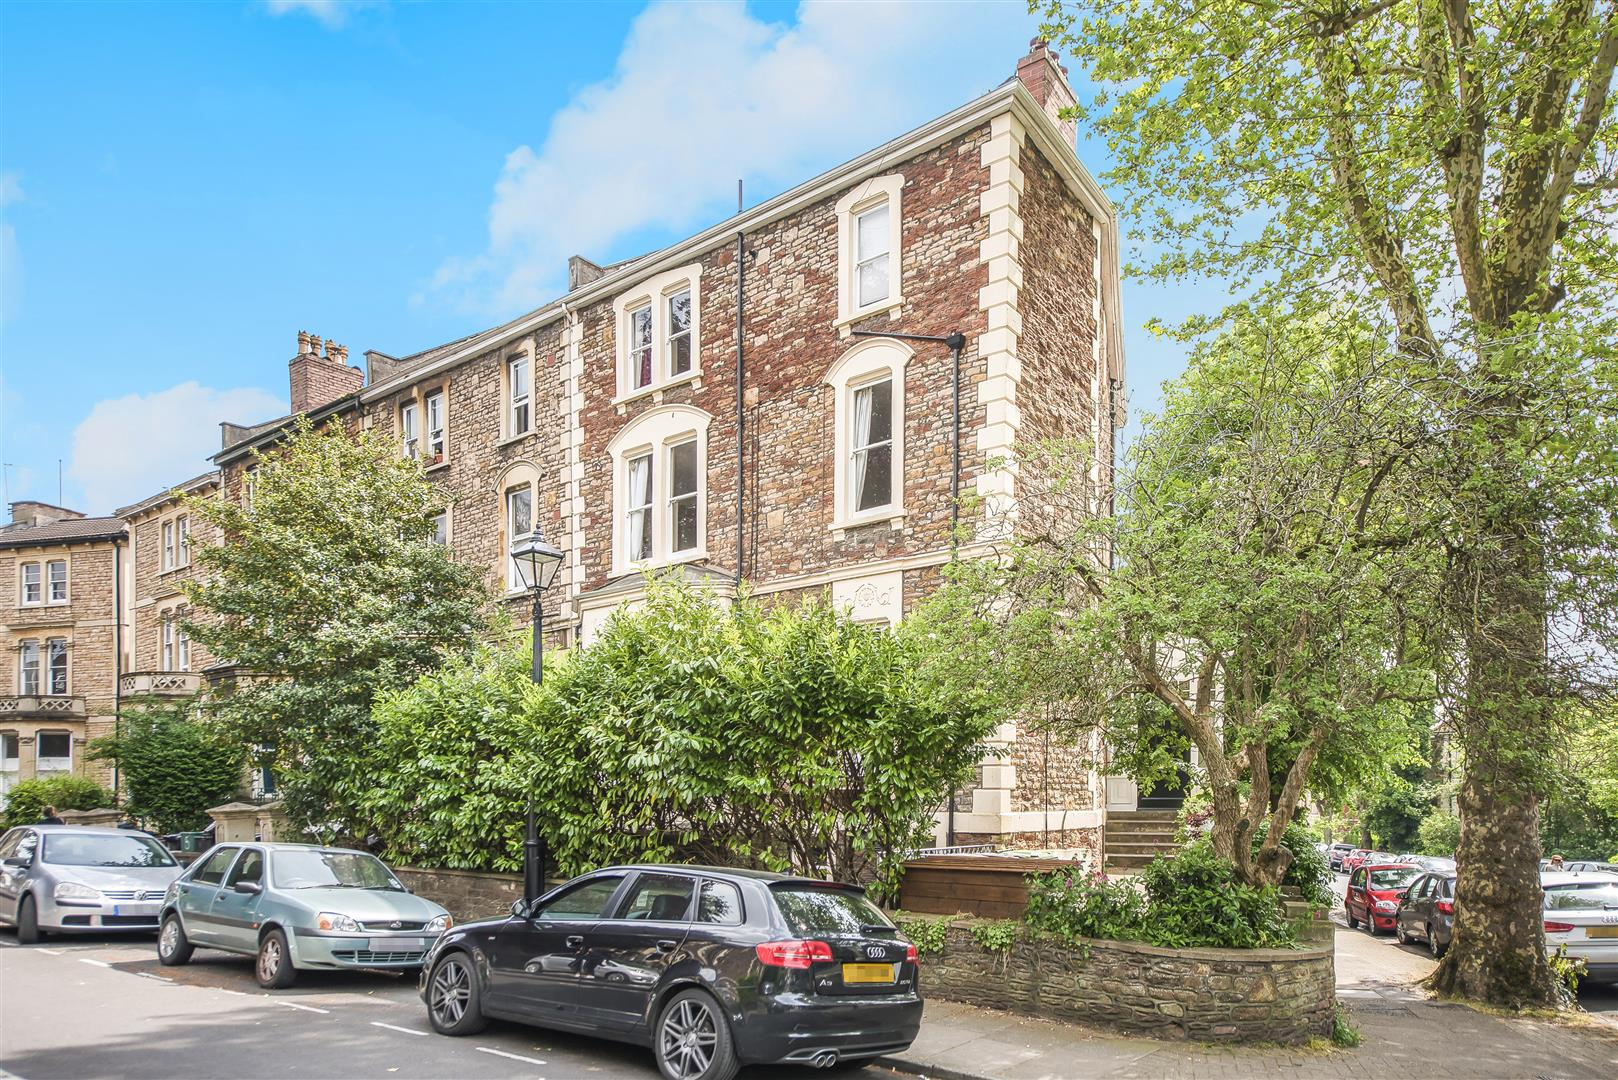 Images for Whatley Road, Clifton EAID:hollismoapi BID:1